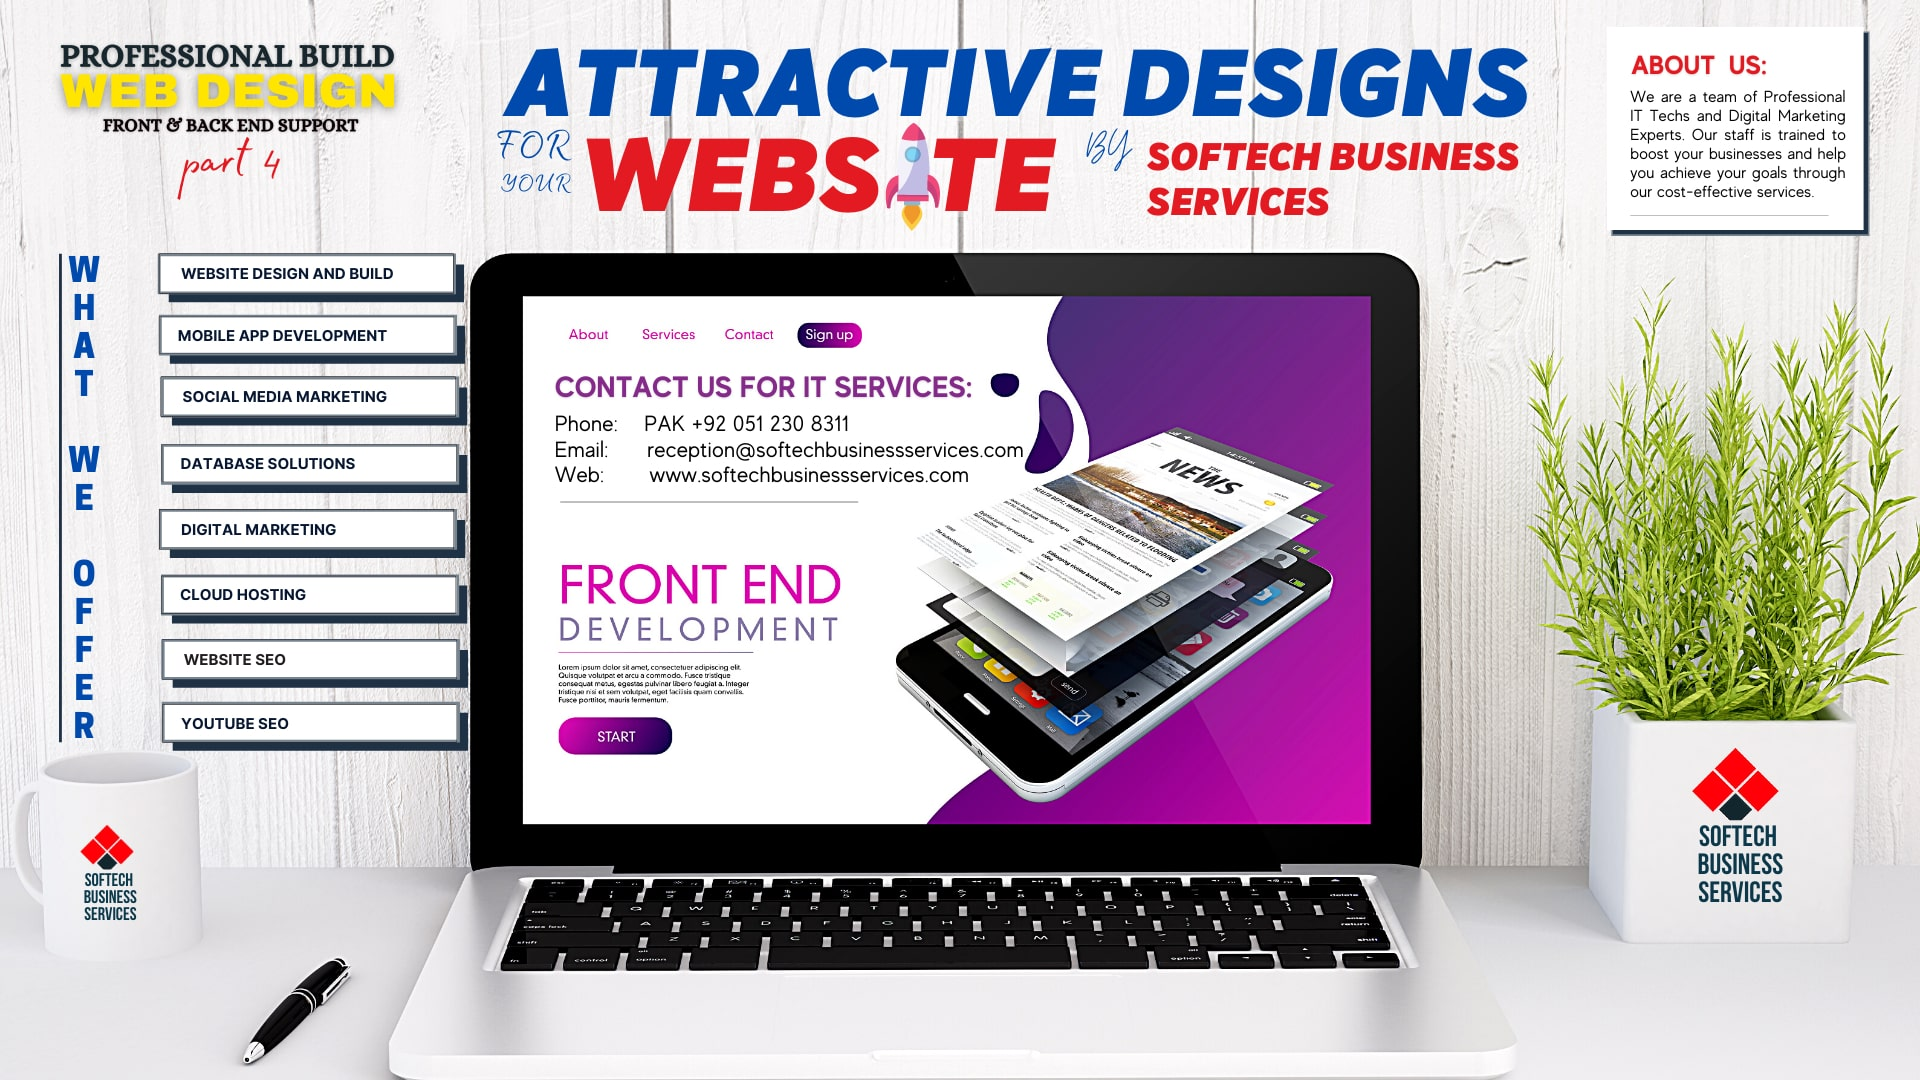 Top 6 Tips To Make Your Website Attractive and Beautiful by Softech Business Services